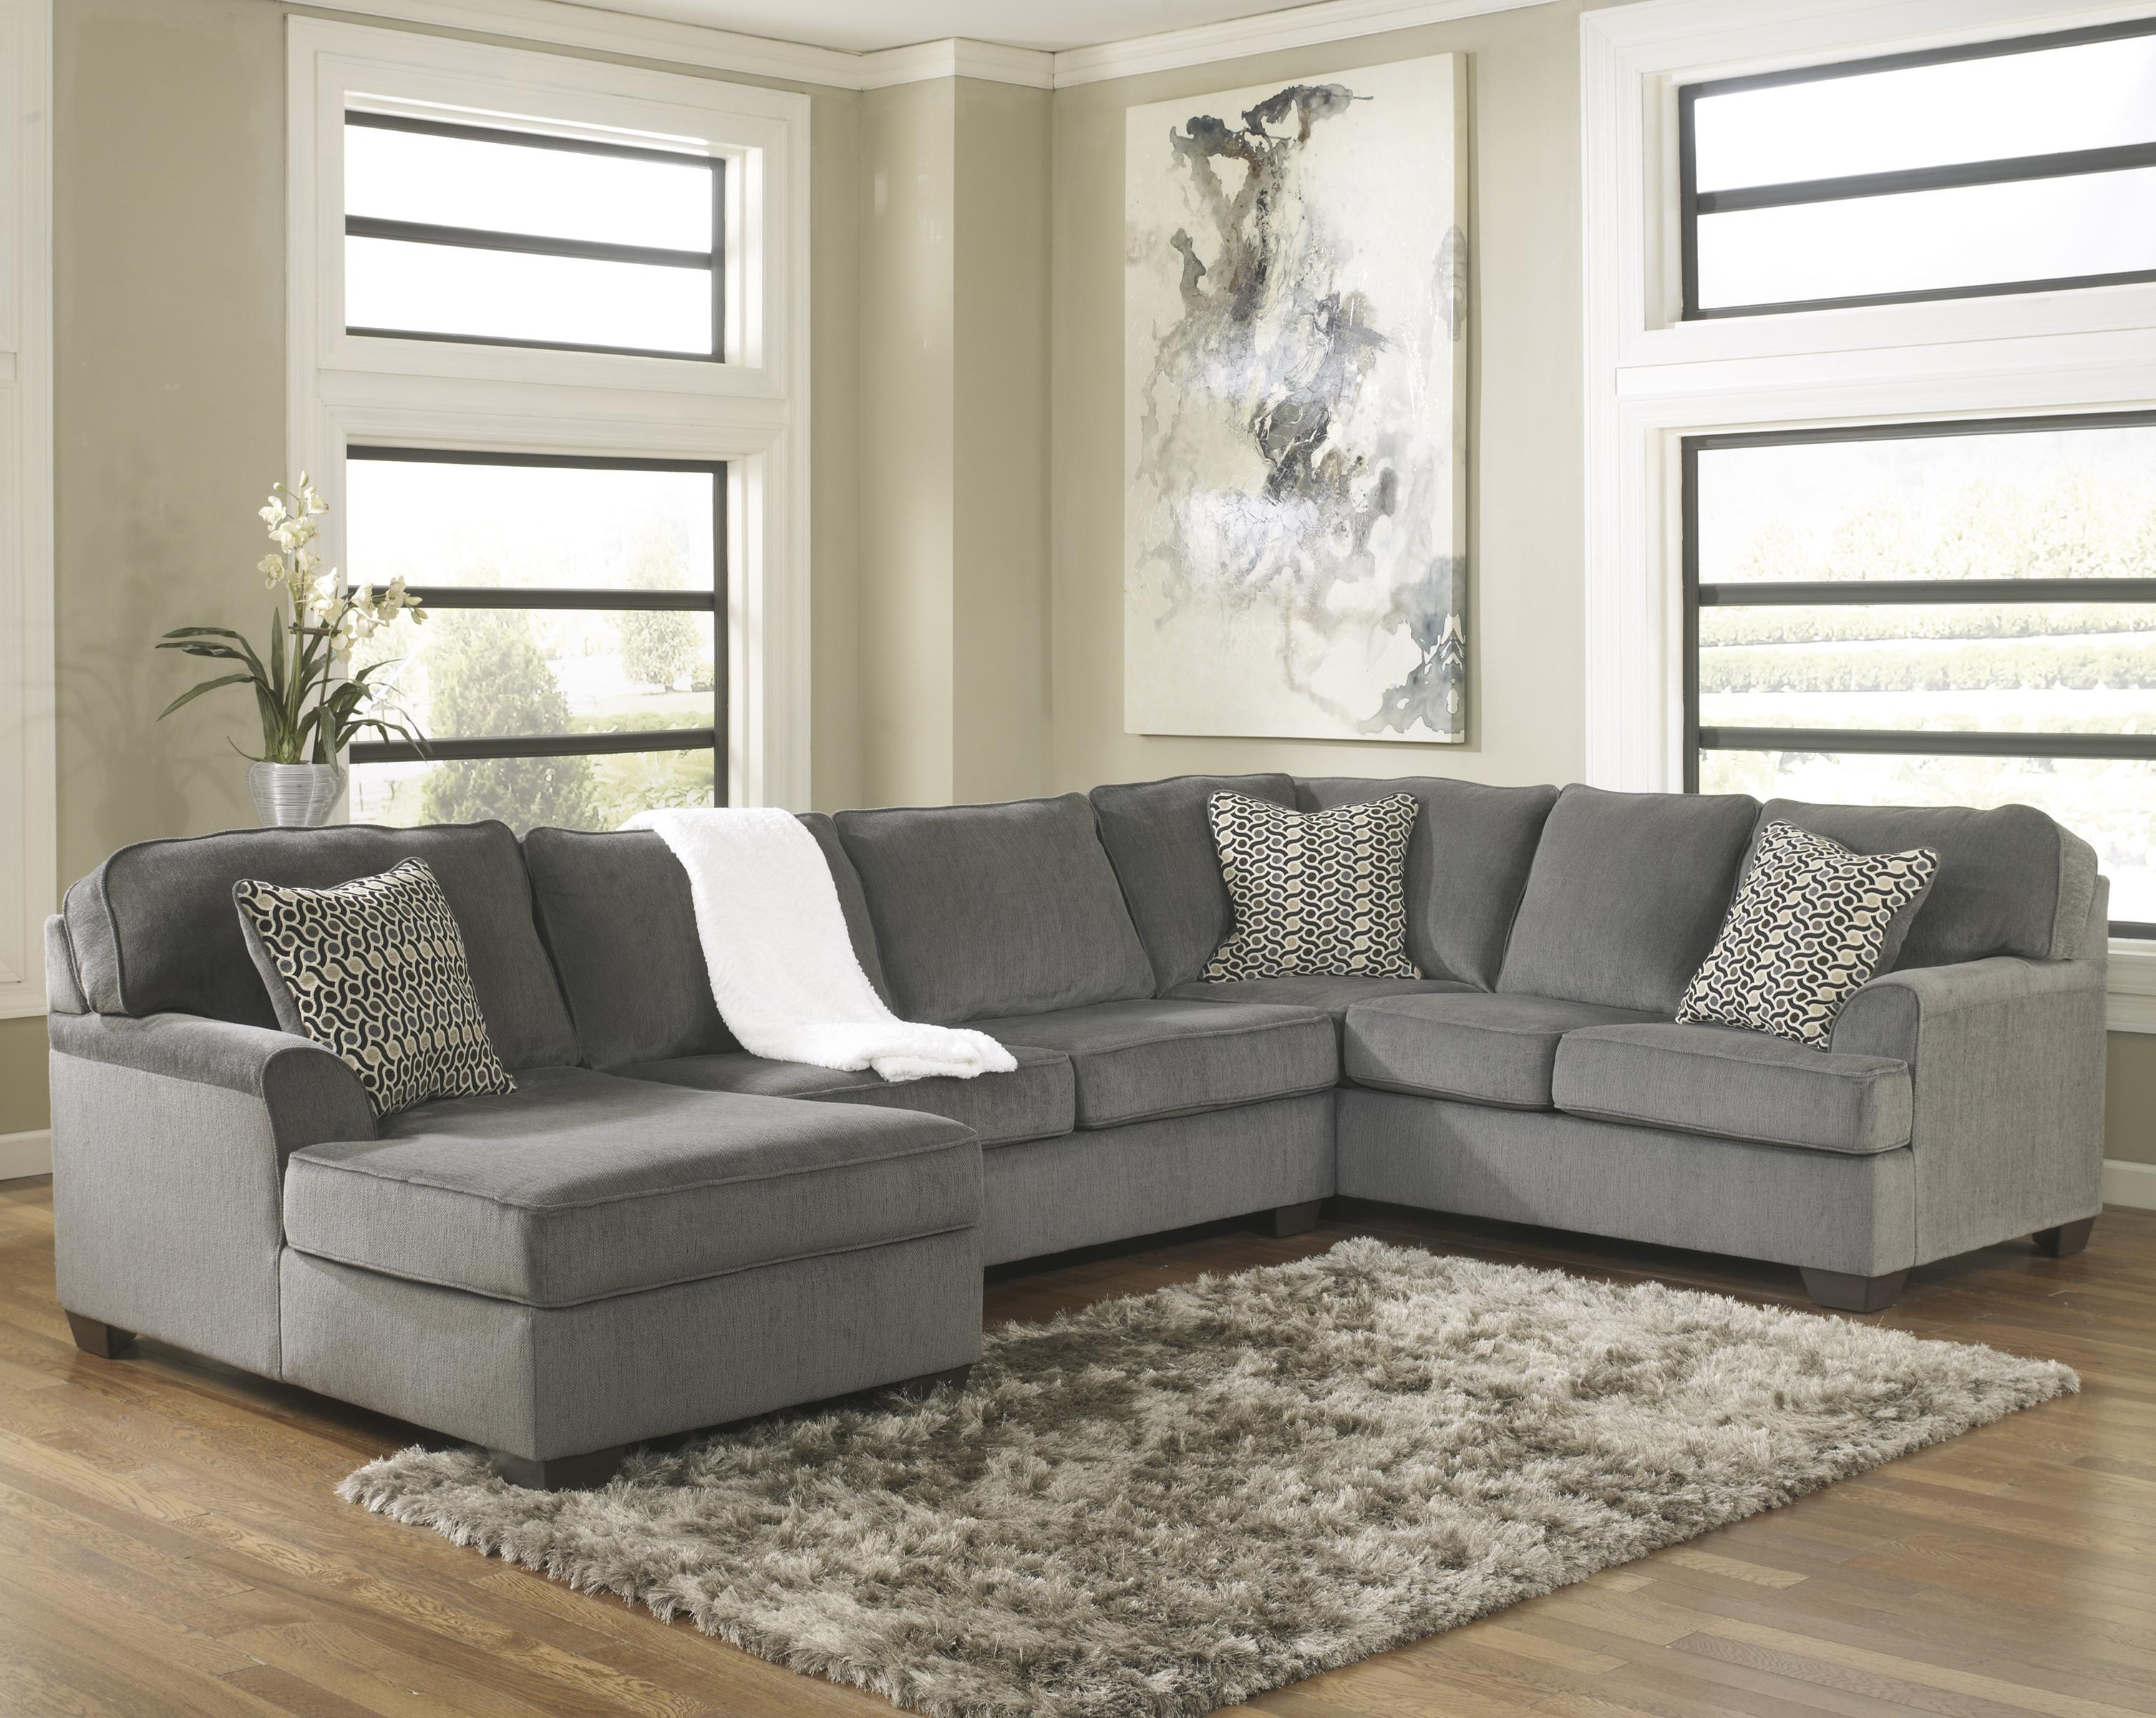 Loric - Smoke Contemporary 3-Piece Sectional with Chaise by Ashley Furniture at Lapeer Furniture & Mattress Center